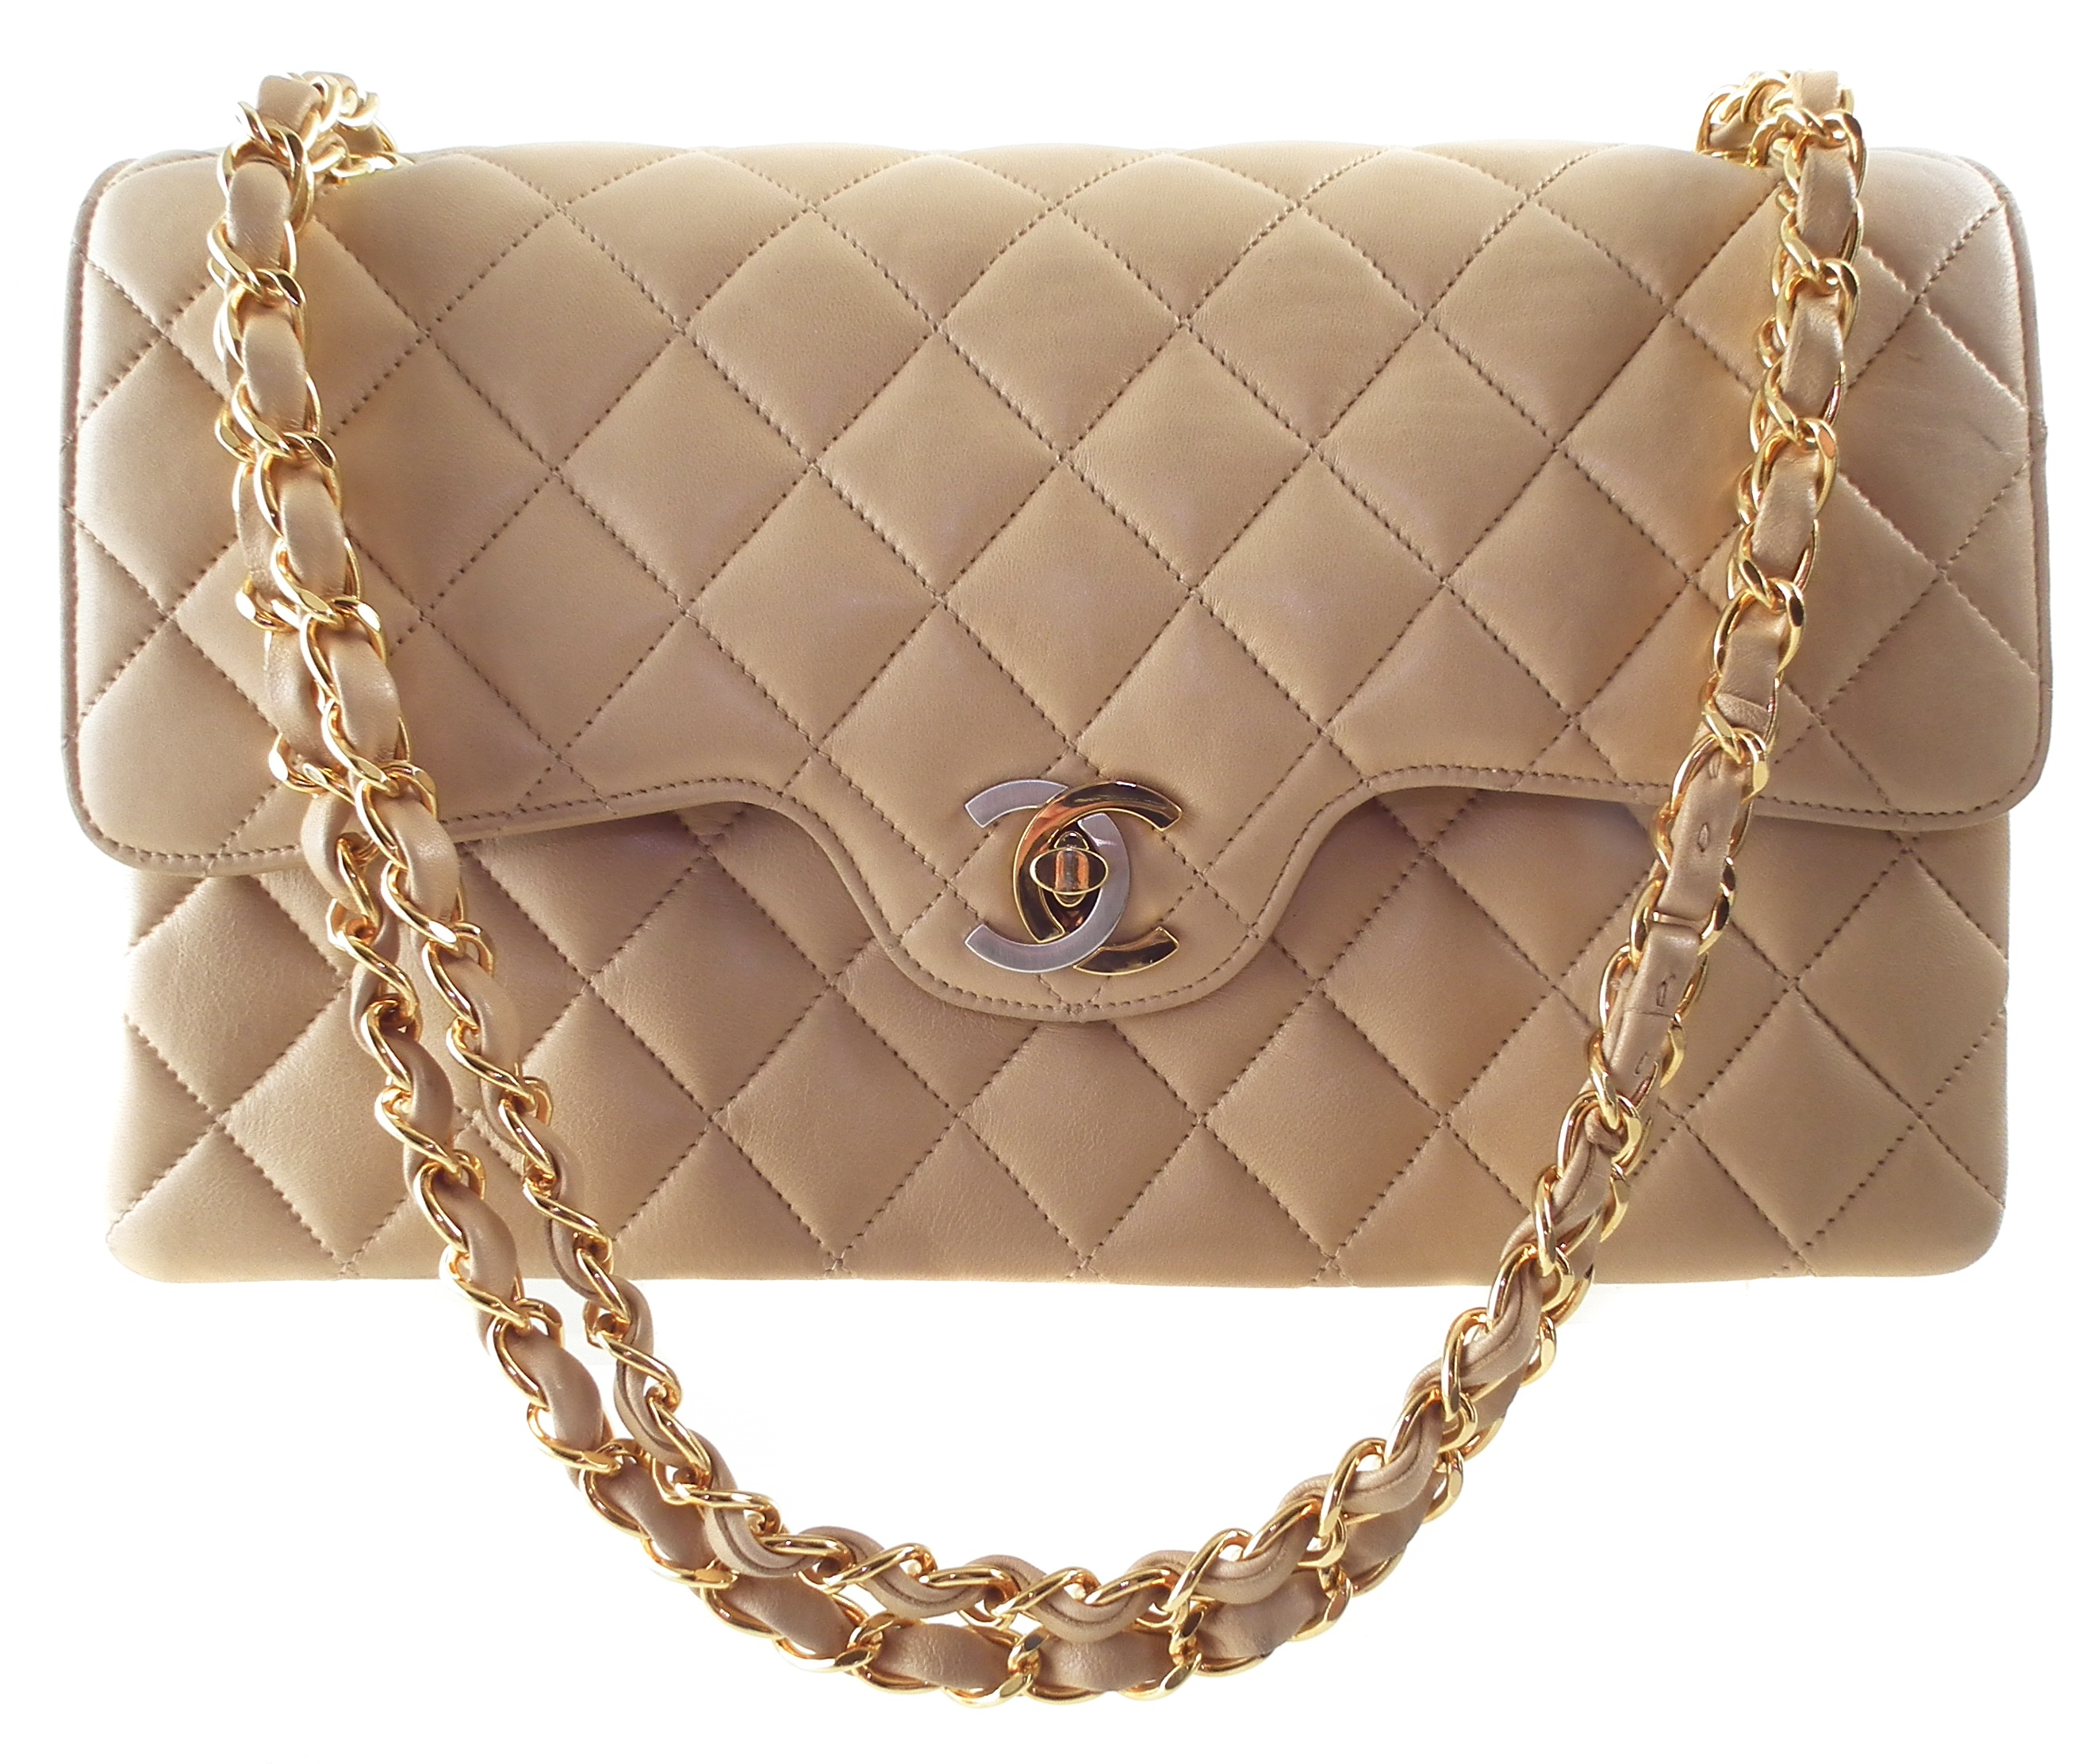 A rare Chanel medium double flap handbag, circa 1991-4, the beige quilted lambskin leather exterior with gold and silver-tone locking clasp, gold-tone double chain shoulder strap, serial number 2827451. Dimensions 26 x 16 x 7cm. With maker's authenticity card.  26 x 16 x 7cm  Sold for £2,196